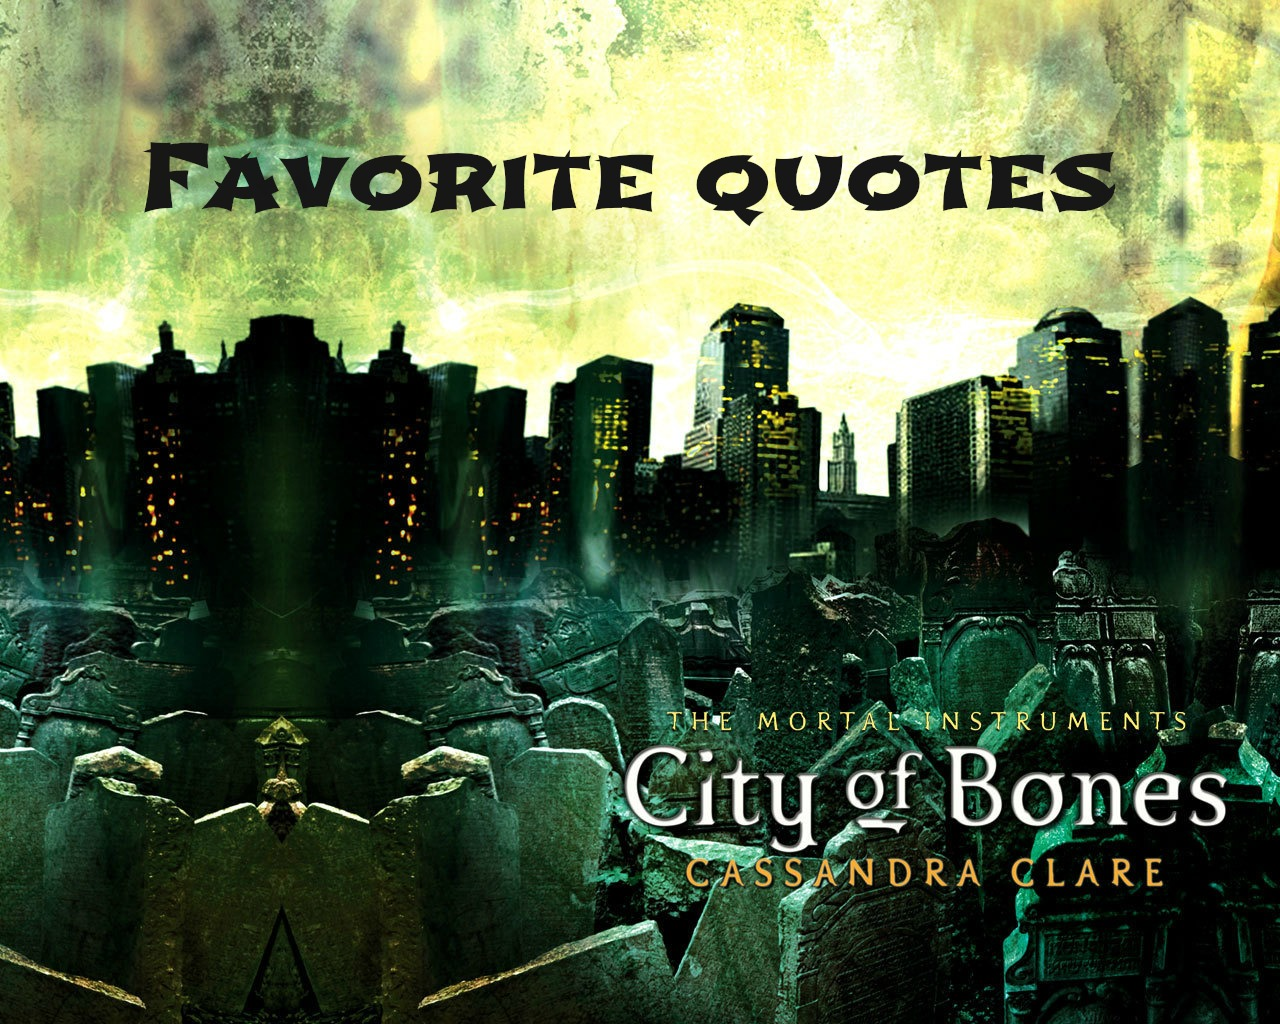 Life Strings The Mortal Instruments City Of Bones Quotes